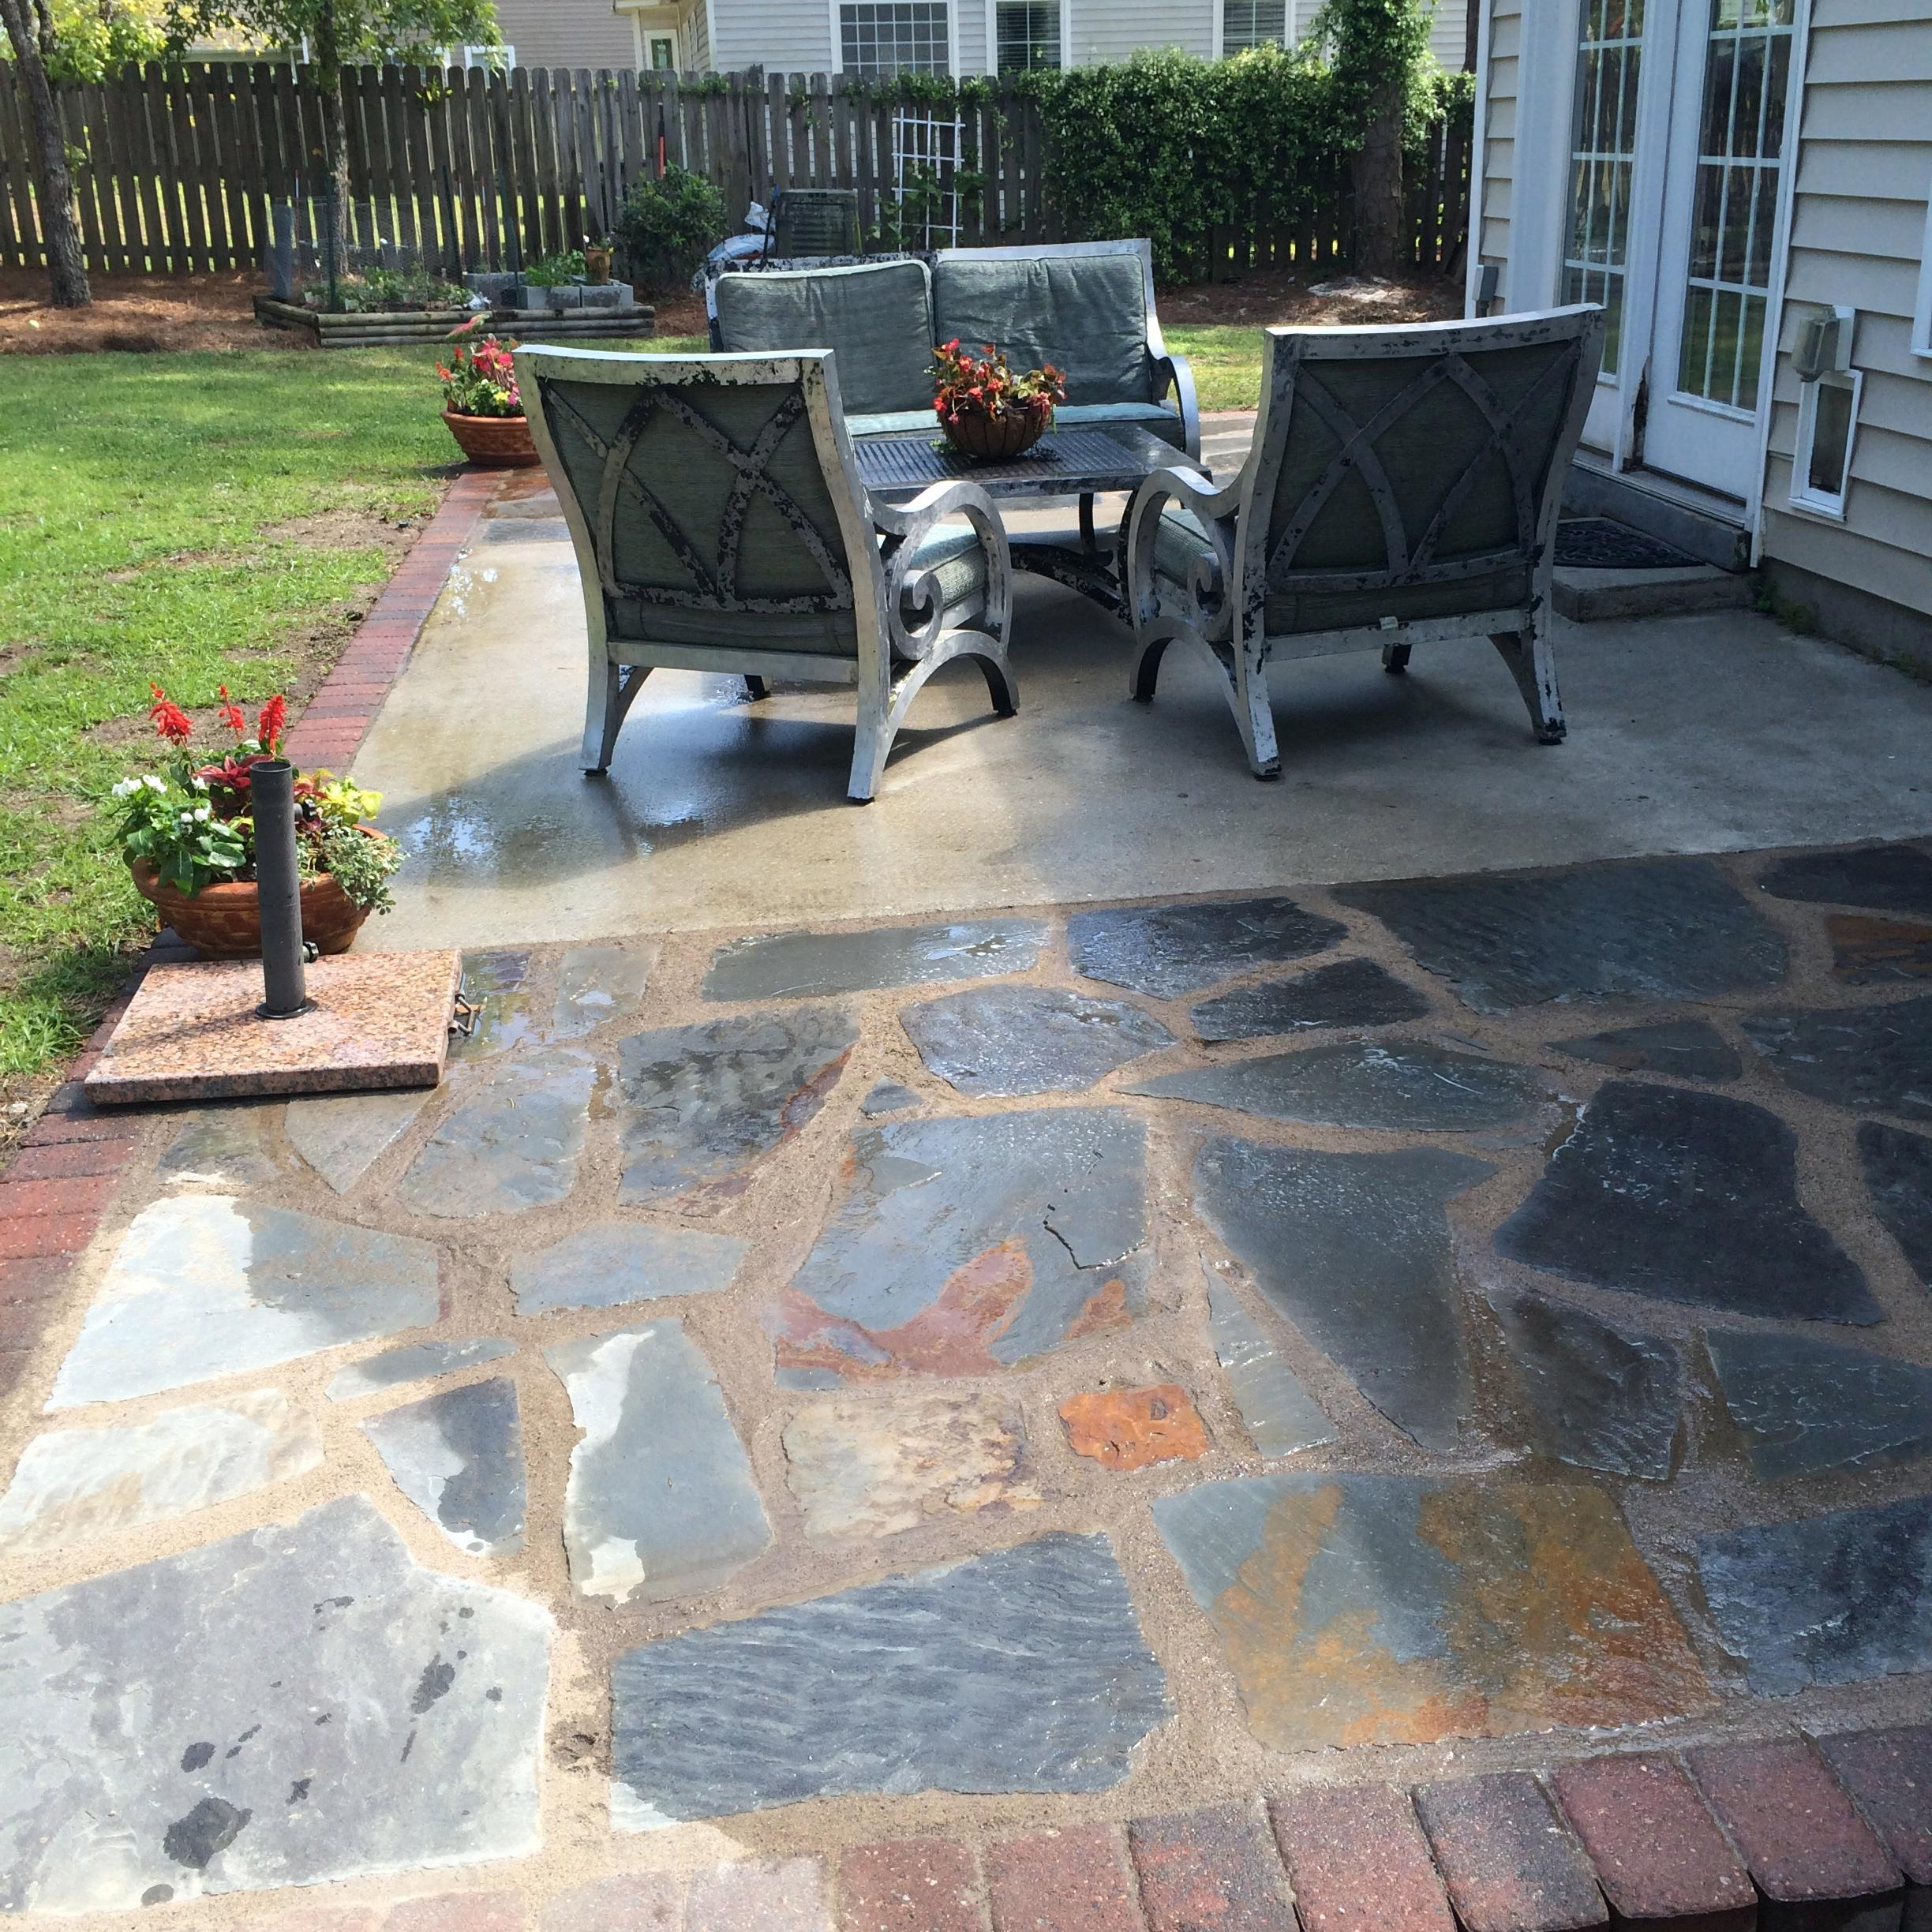 Green and clean landscaping in greensboro nc 27407 for Landscaping rocks greensboro nc